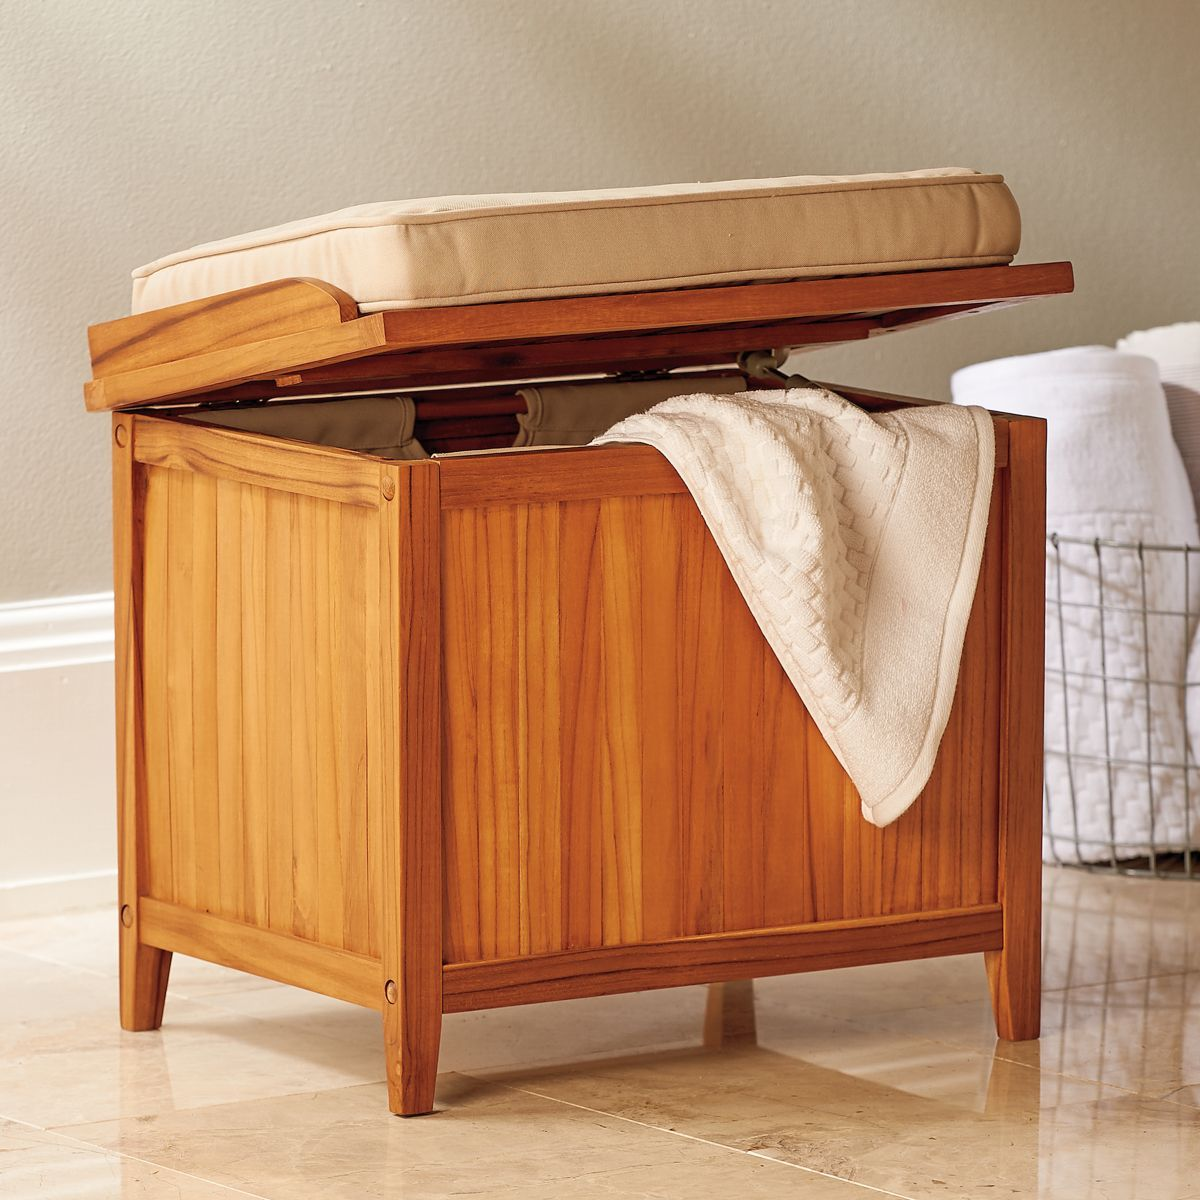 Teak Hamper Bench Storage Bench Seating Bathroom Bench Seat